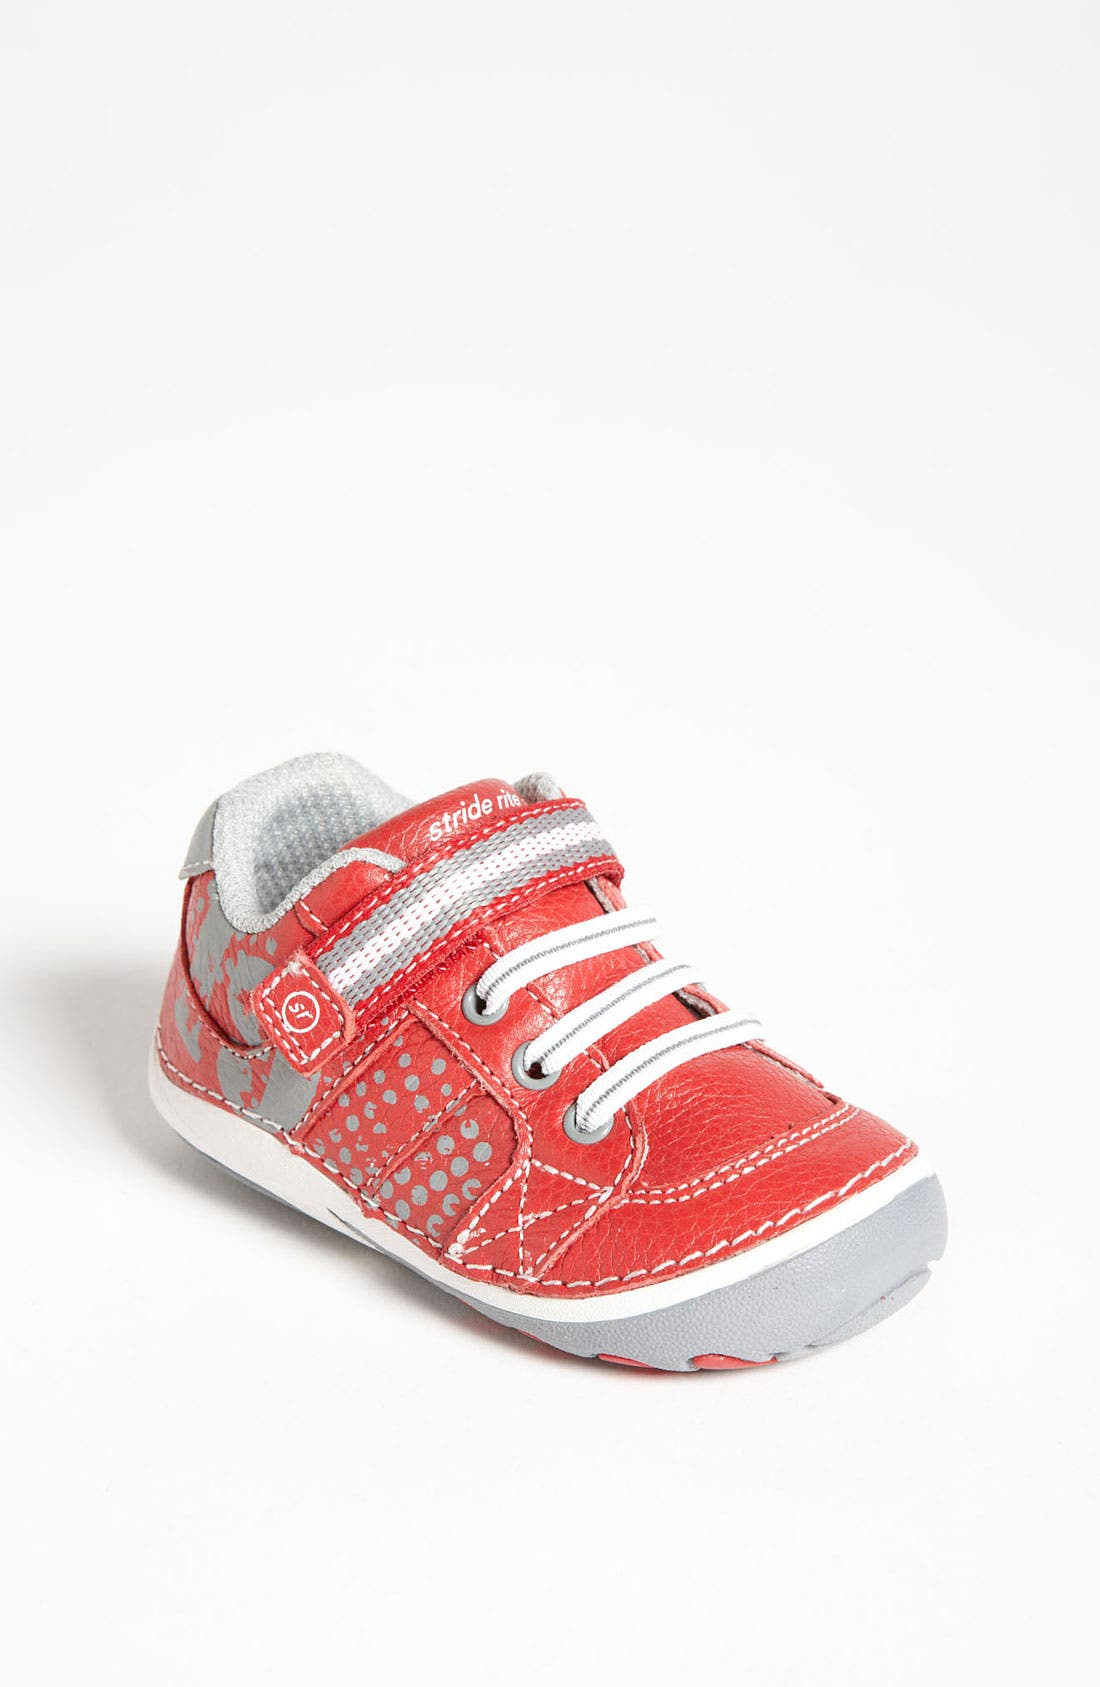 'Artie' Sneaker,                             Main thumbnail 1, color,                             Red/ Grey